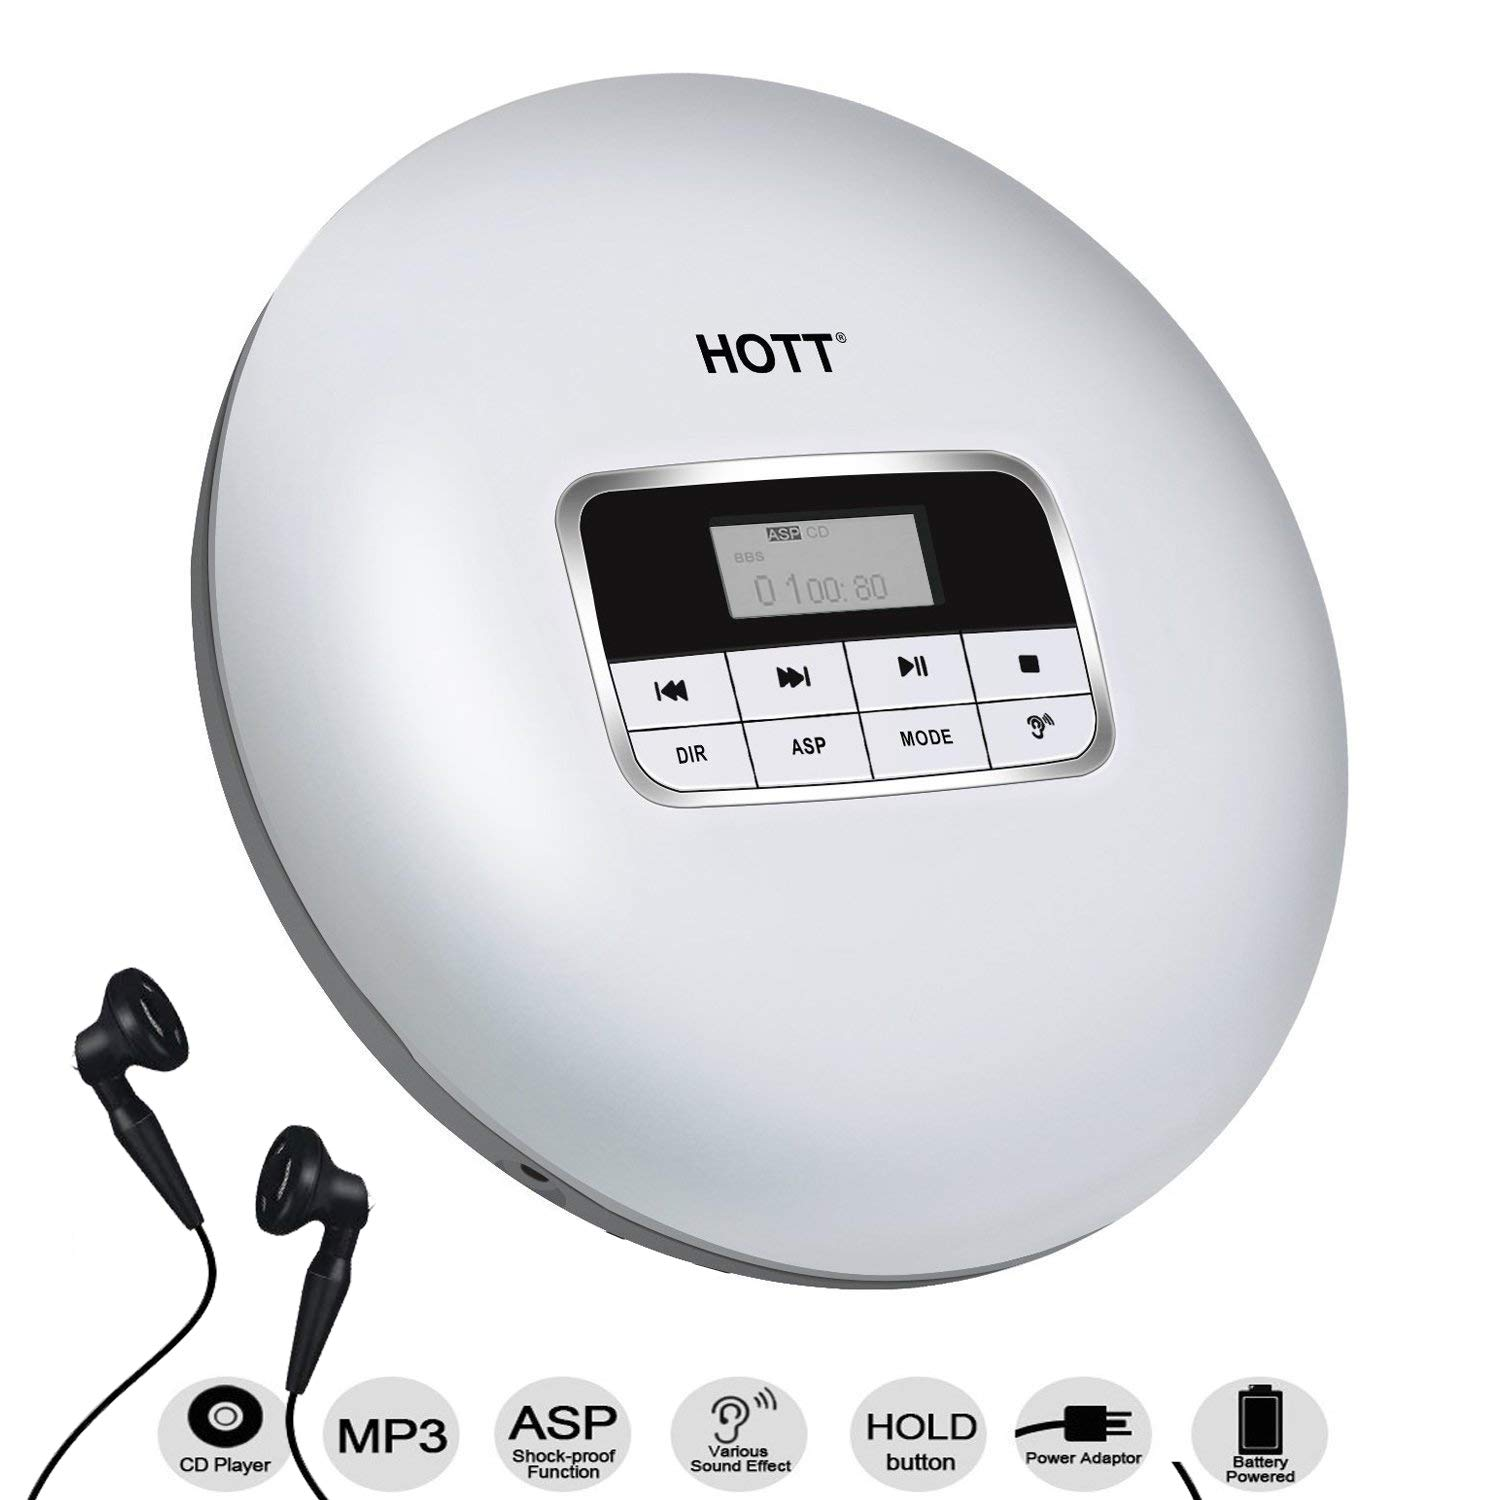 HONGYU Slim Portable CD Player With LCD Display, Shockproof Function Anti-Skip Protection Personal Compact Disc Player With Earphone And Power Adapter (White)